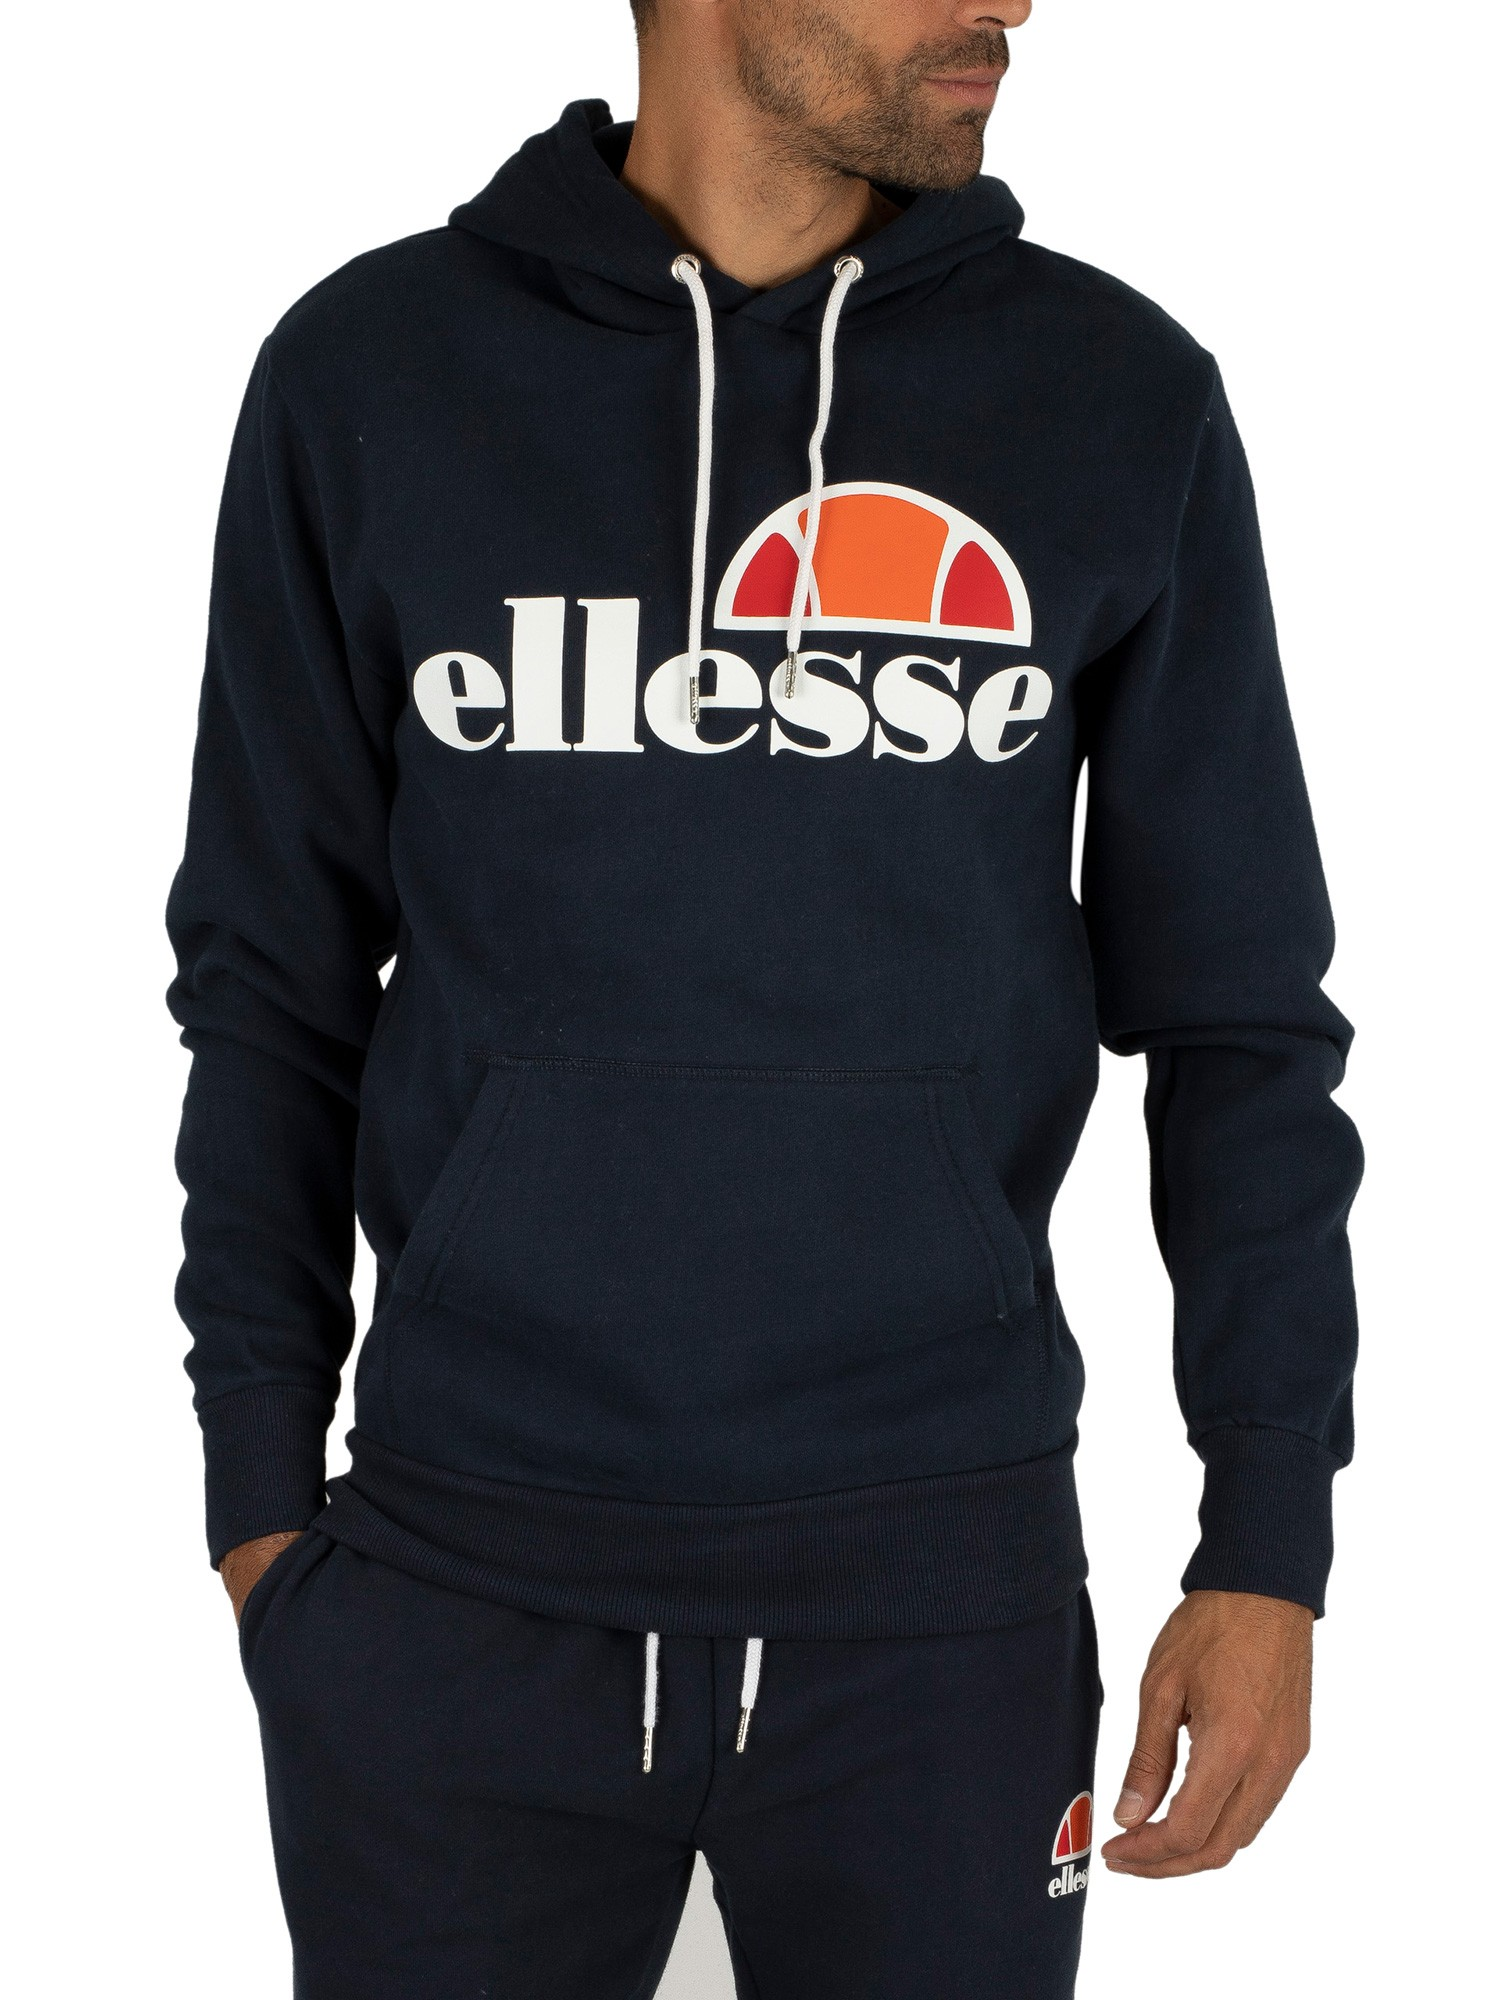 ellesse herren gottero graphic hoodie blau ebay. Black Bedroom Furniture Sets. Home Design Ideas